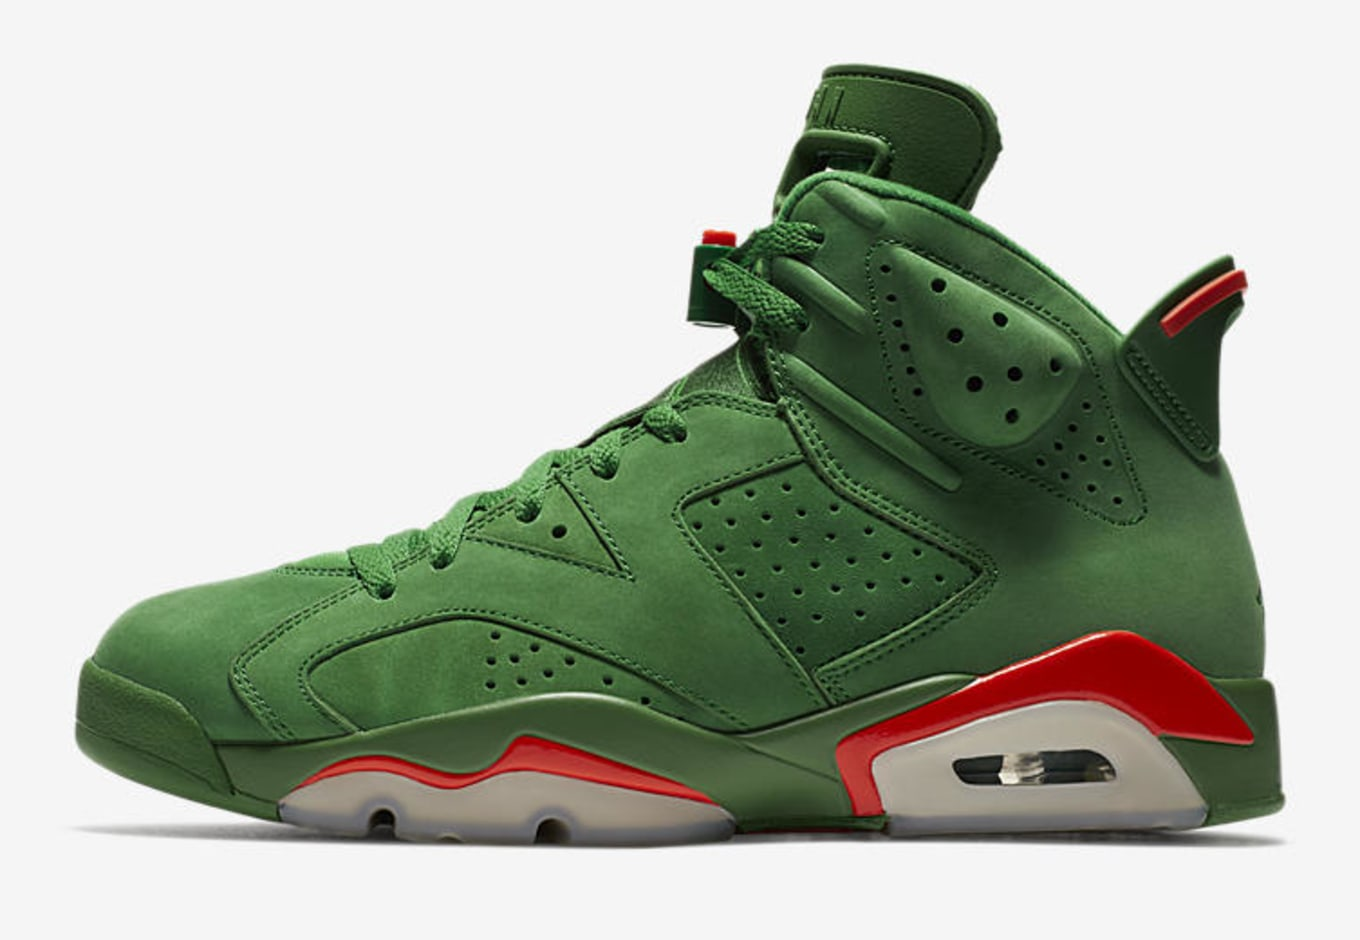 best authentic 99ba6 580b0 Where to Buy Air Jordan 6 Gatorade Green | Sole Collector